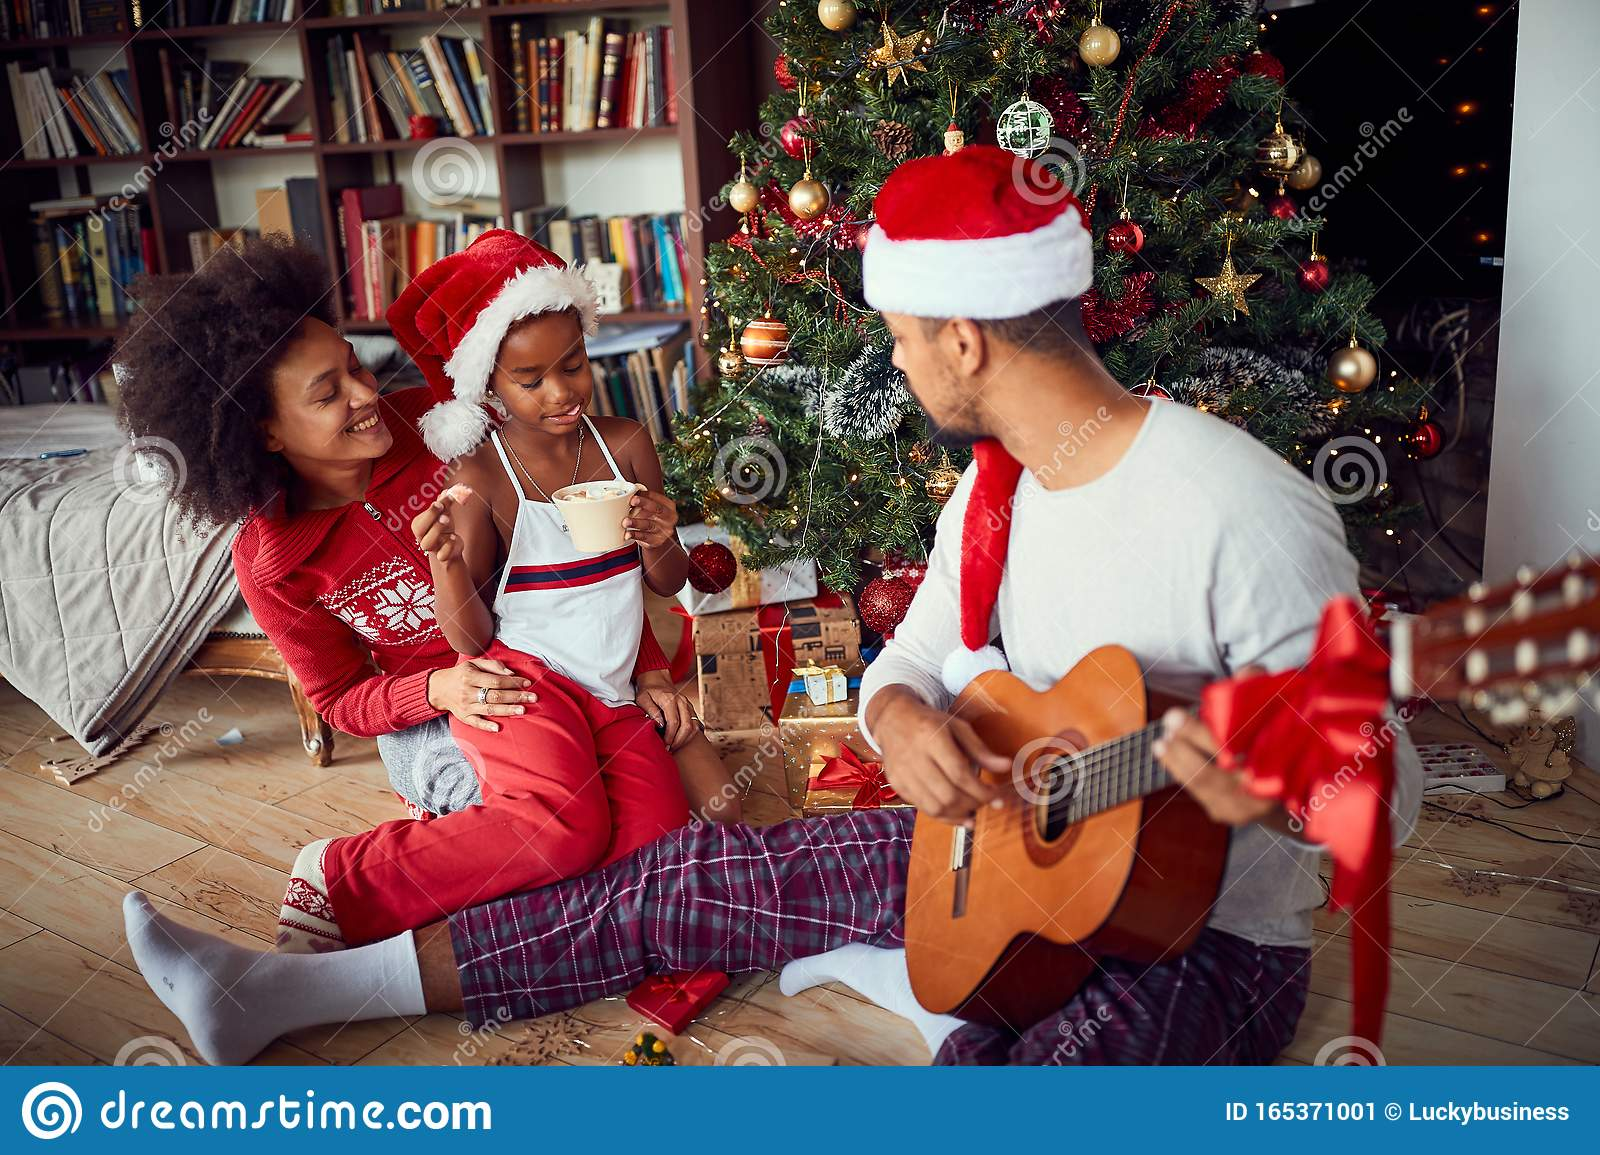 Family At Christmas Morning Sitting On Floor And Play Guitar Stock Image - Image of christmas ...